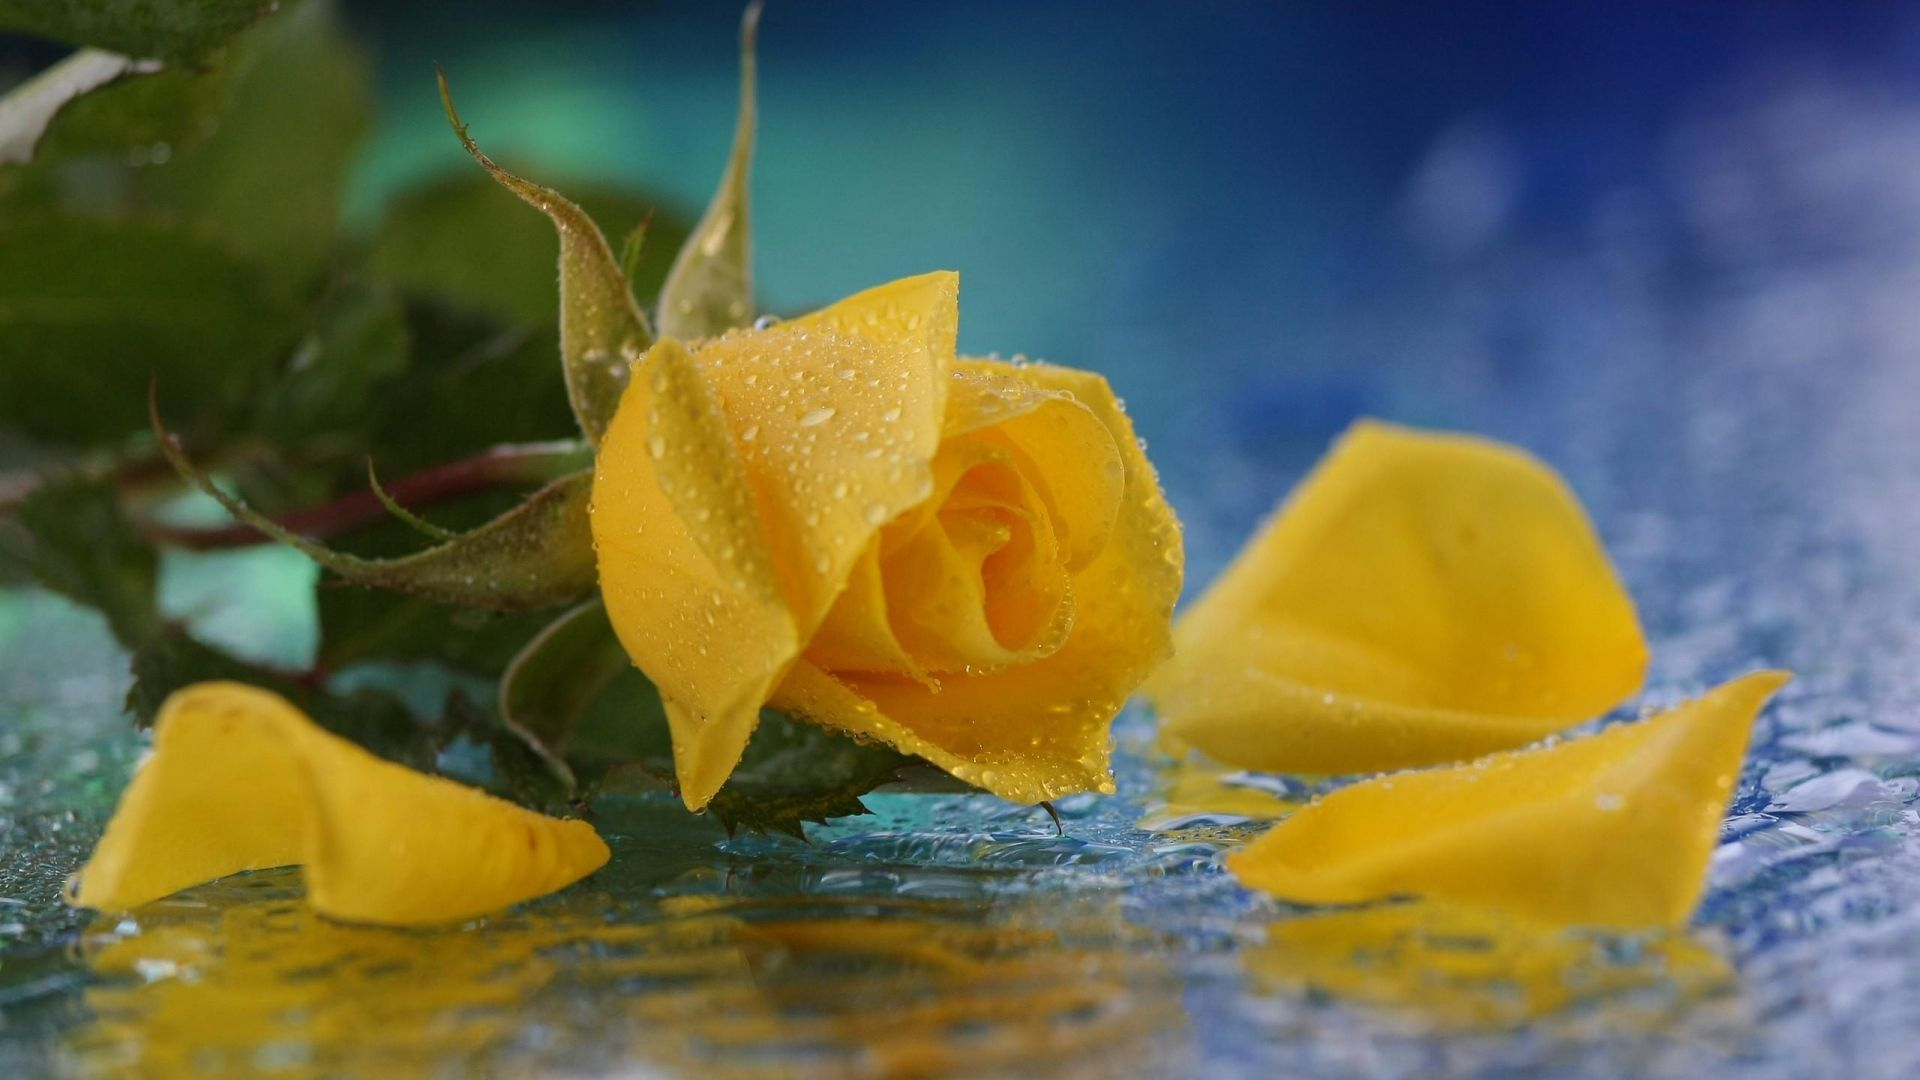 yellow rose flowers background the best flowers ideas 1920a—1080 yellow rose backgrounds 45